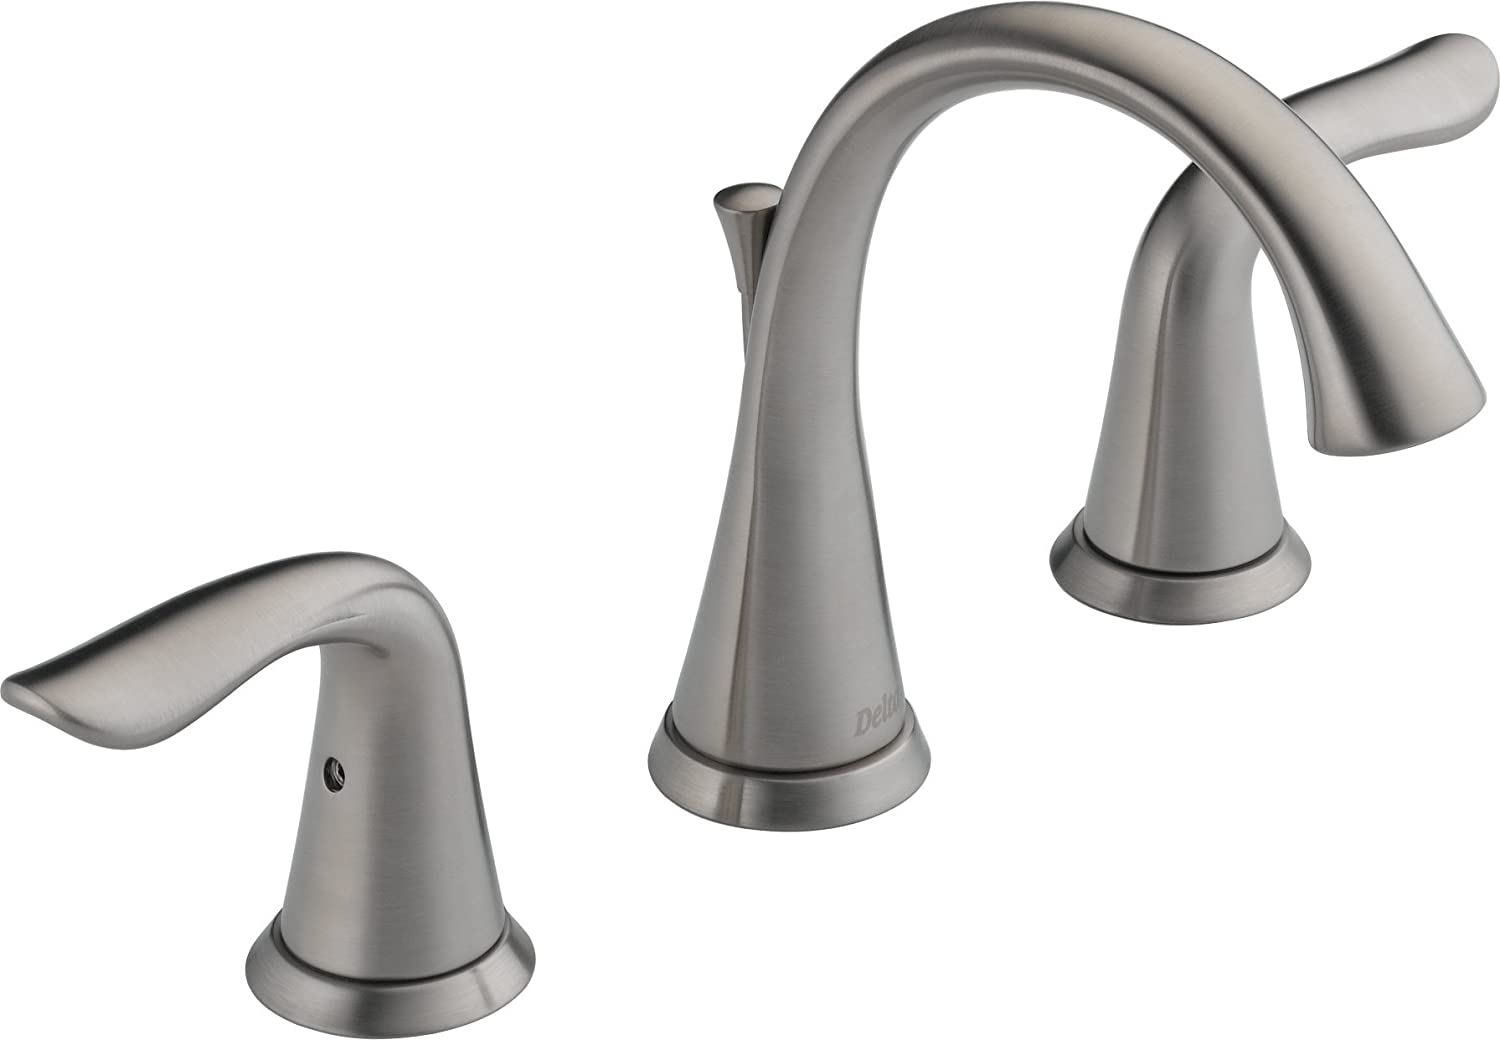 Delta 3538-SSMPU-DST Lahara 2-Handle Widespread Bathroom Faucet with on delta bathroom faucet repair kit, delta bathroom faucets brushed nickel, unique bathroom faucets, delta kitchen accessories, delta sink fixtures, delta garden faucets, delta floor faucets, delta bathroom faucets brand, delta centerset bathroom faucet, delta bathroom wall mount faucets, delta kitchen faucets, delta lahara bathroom faucet, delta bathroom faucets chrome, delta bathroom faucet repair diagram, delta bathroom faucets bronze, bathroom vanity faucets, delta bathroom water faucets, delta victorian faucet bathroom, discontinued delta faucets, delta bathroom sink parts,